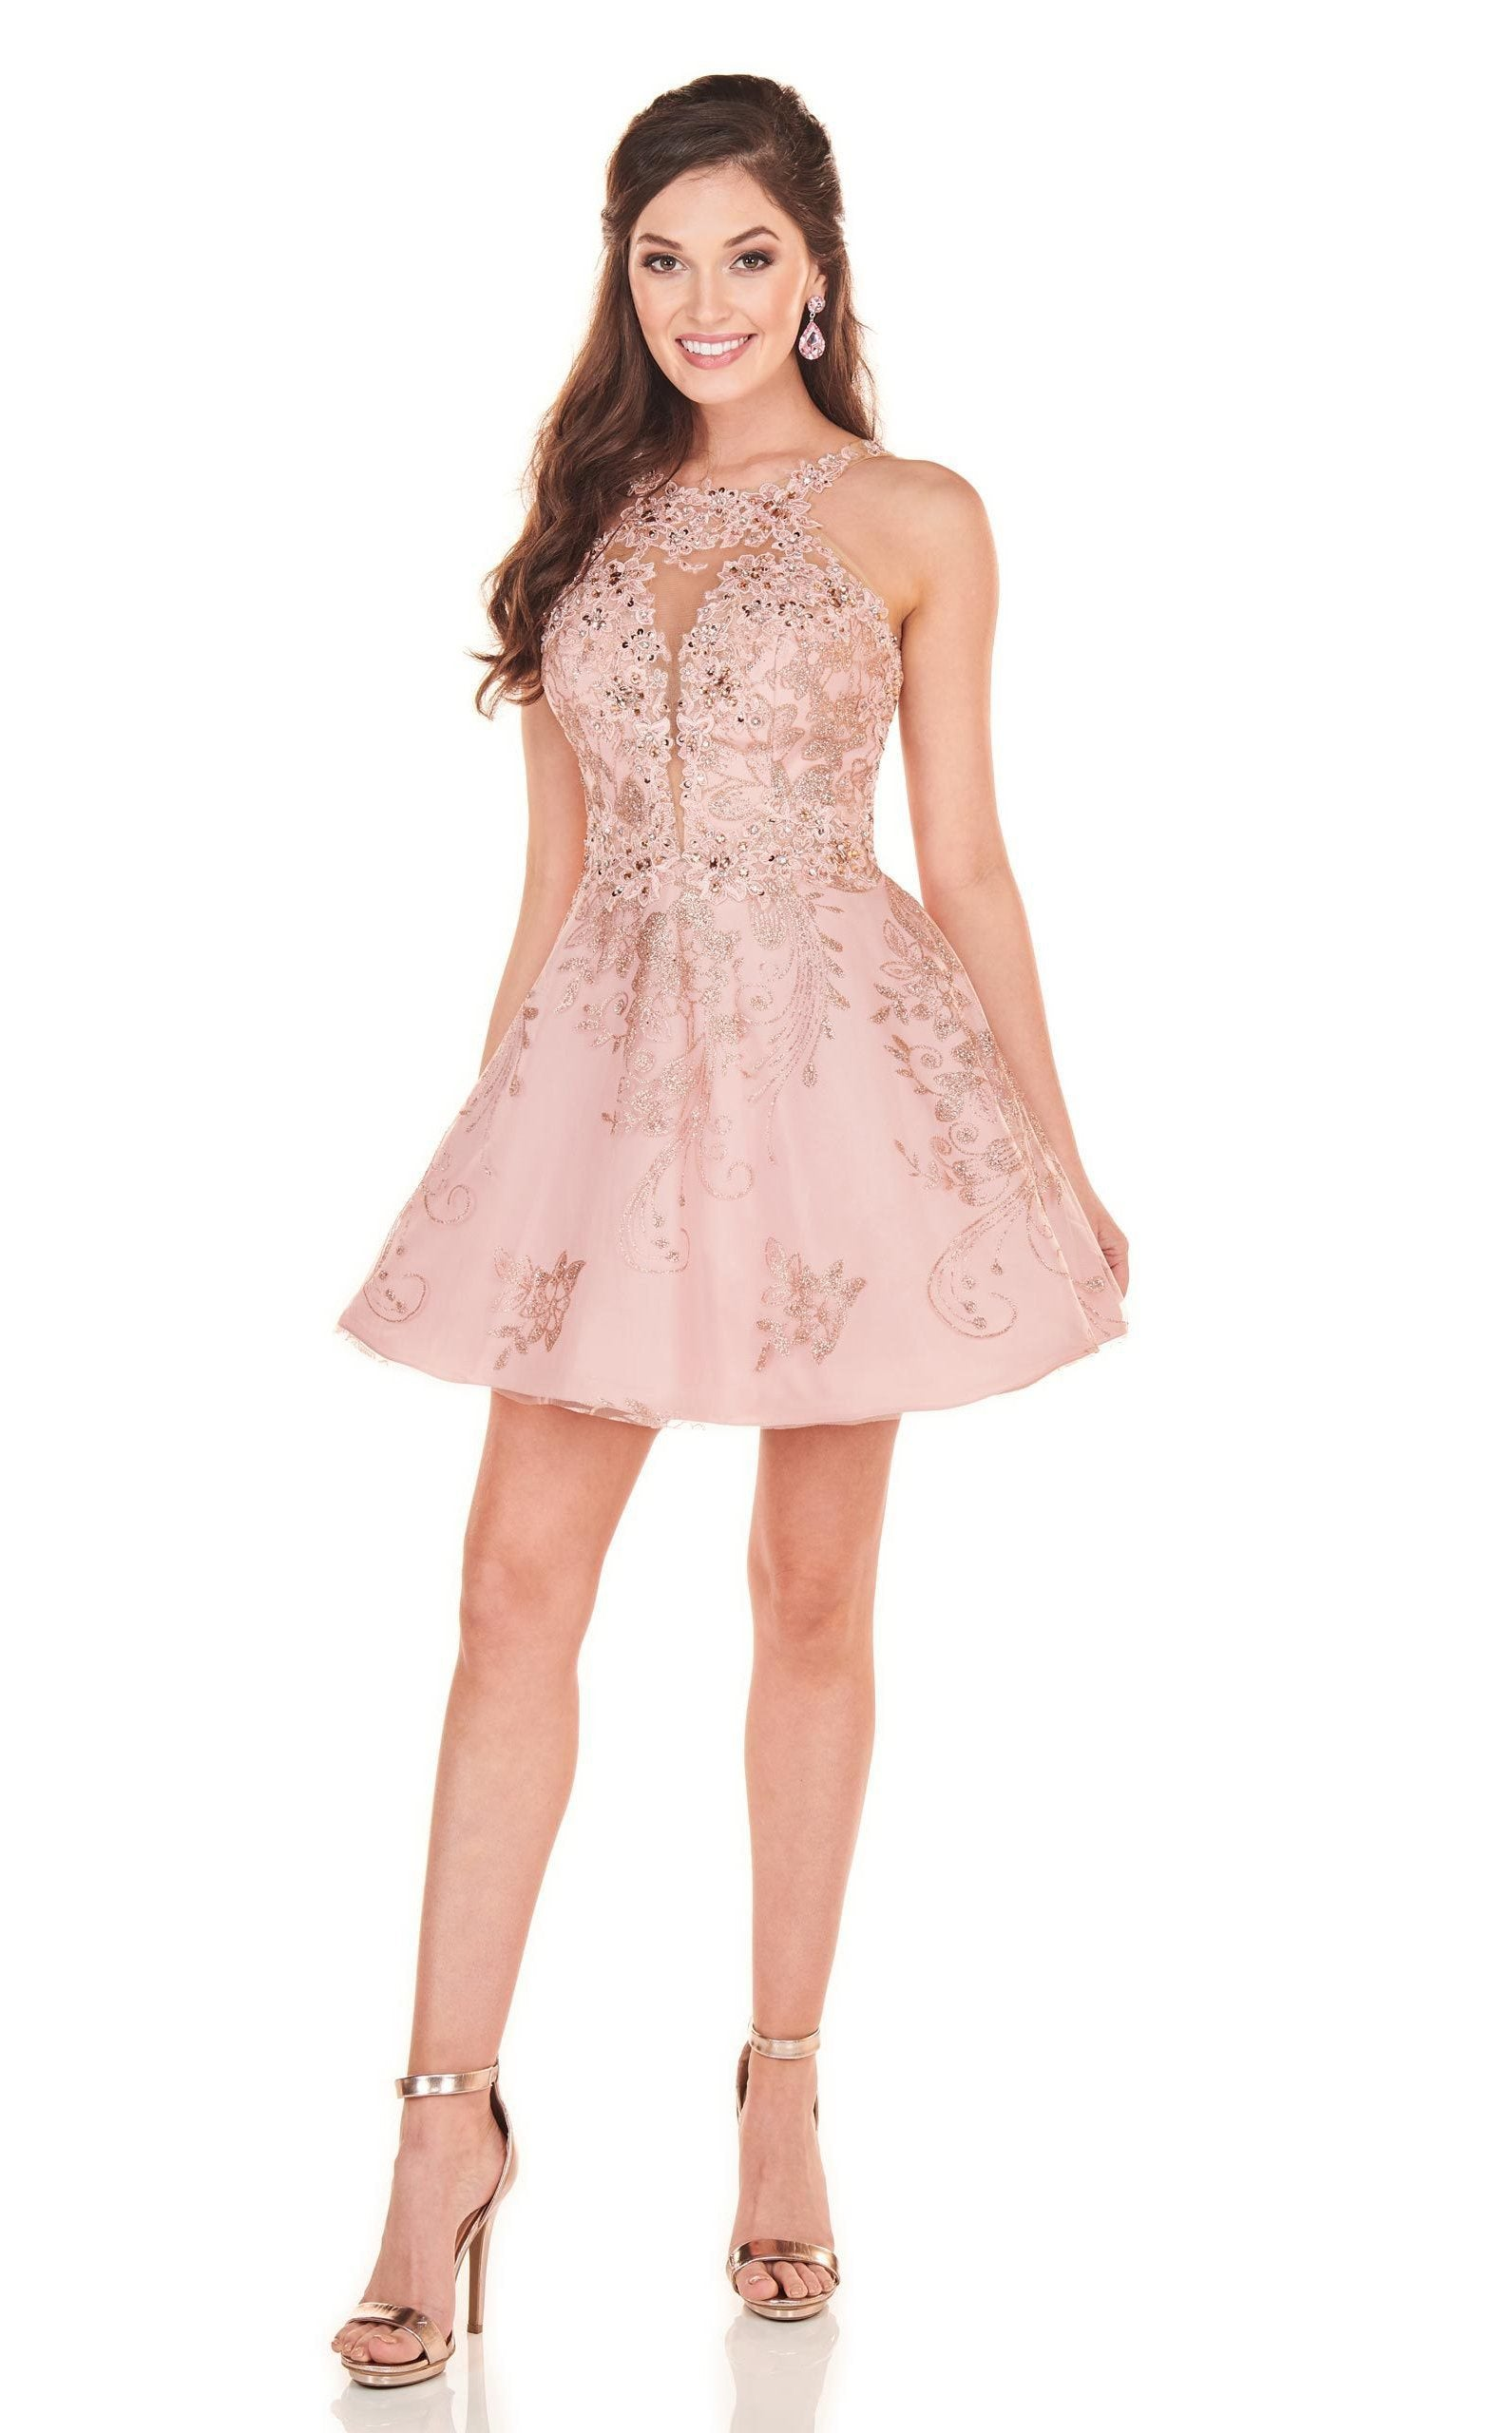 Rachel Allan Homecoming - 4032 Beaded Applique A-Line Cocktail Dress In Pink and Gold